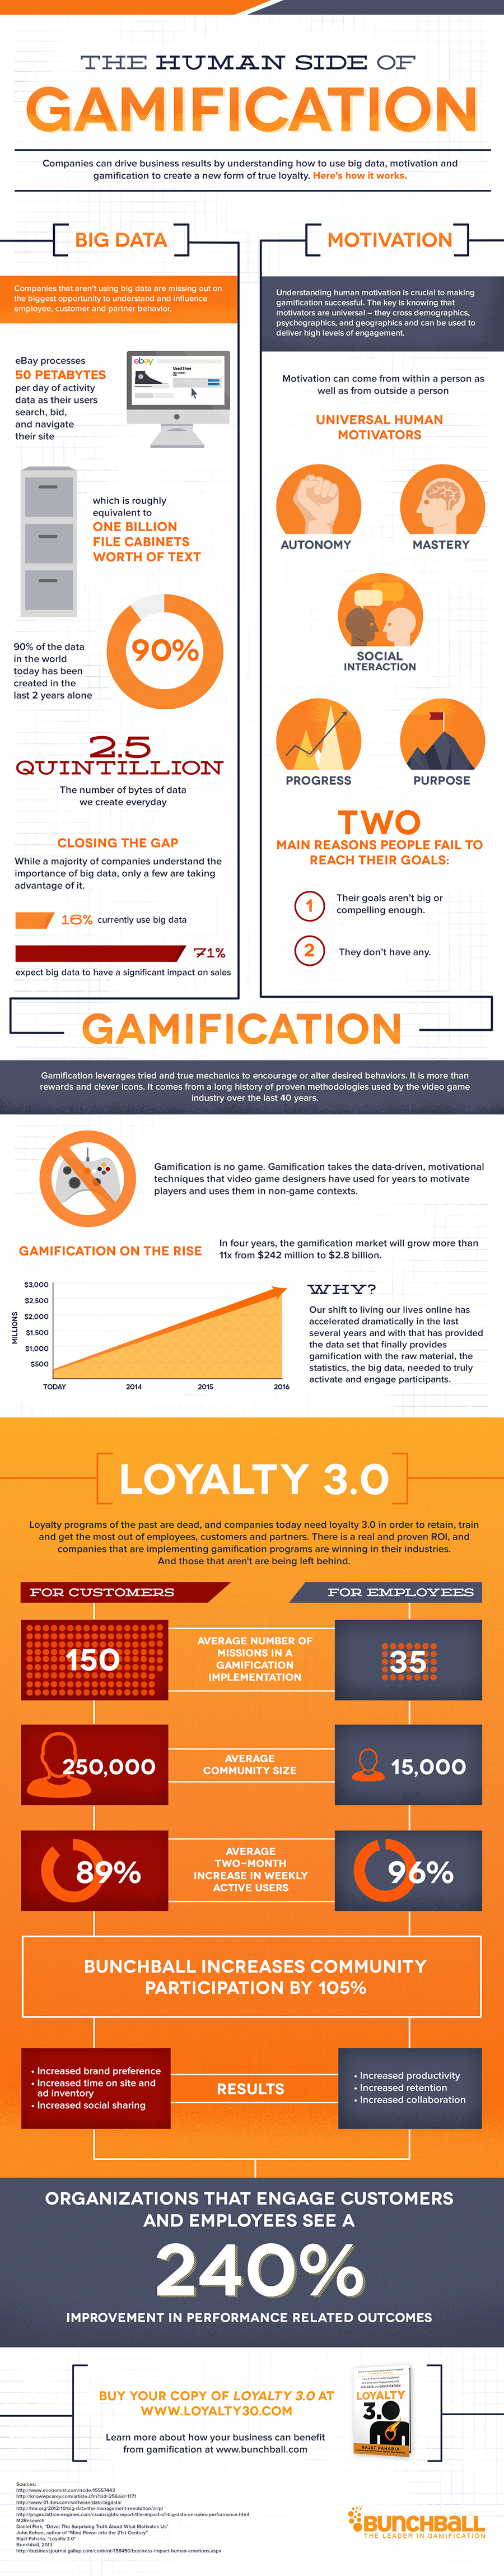 The Human Side Of Gamification Statistics